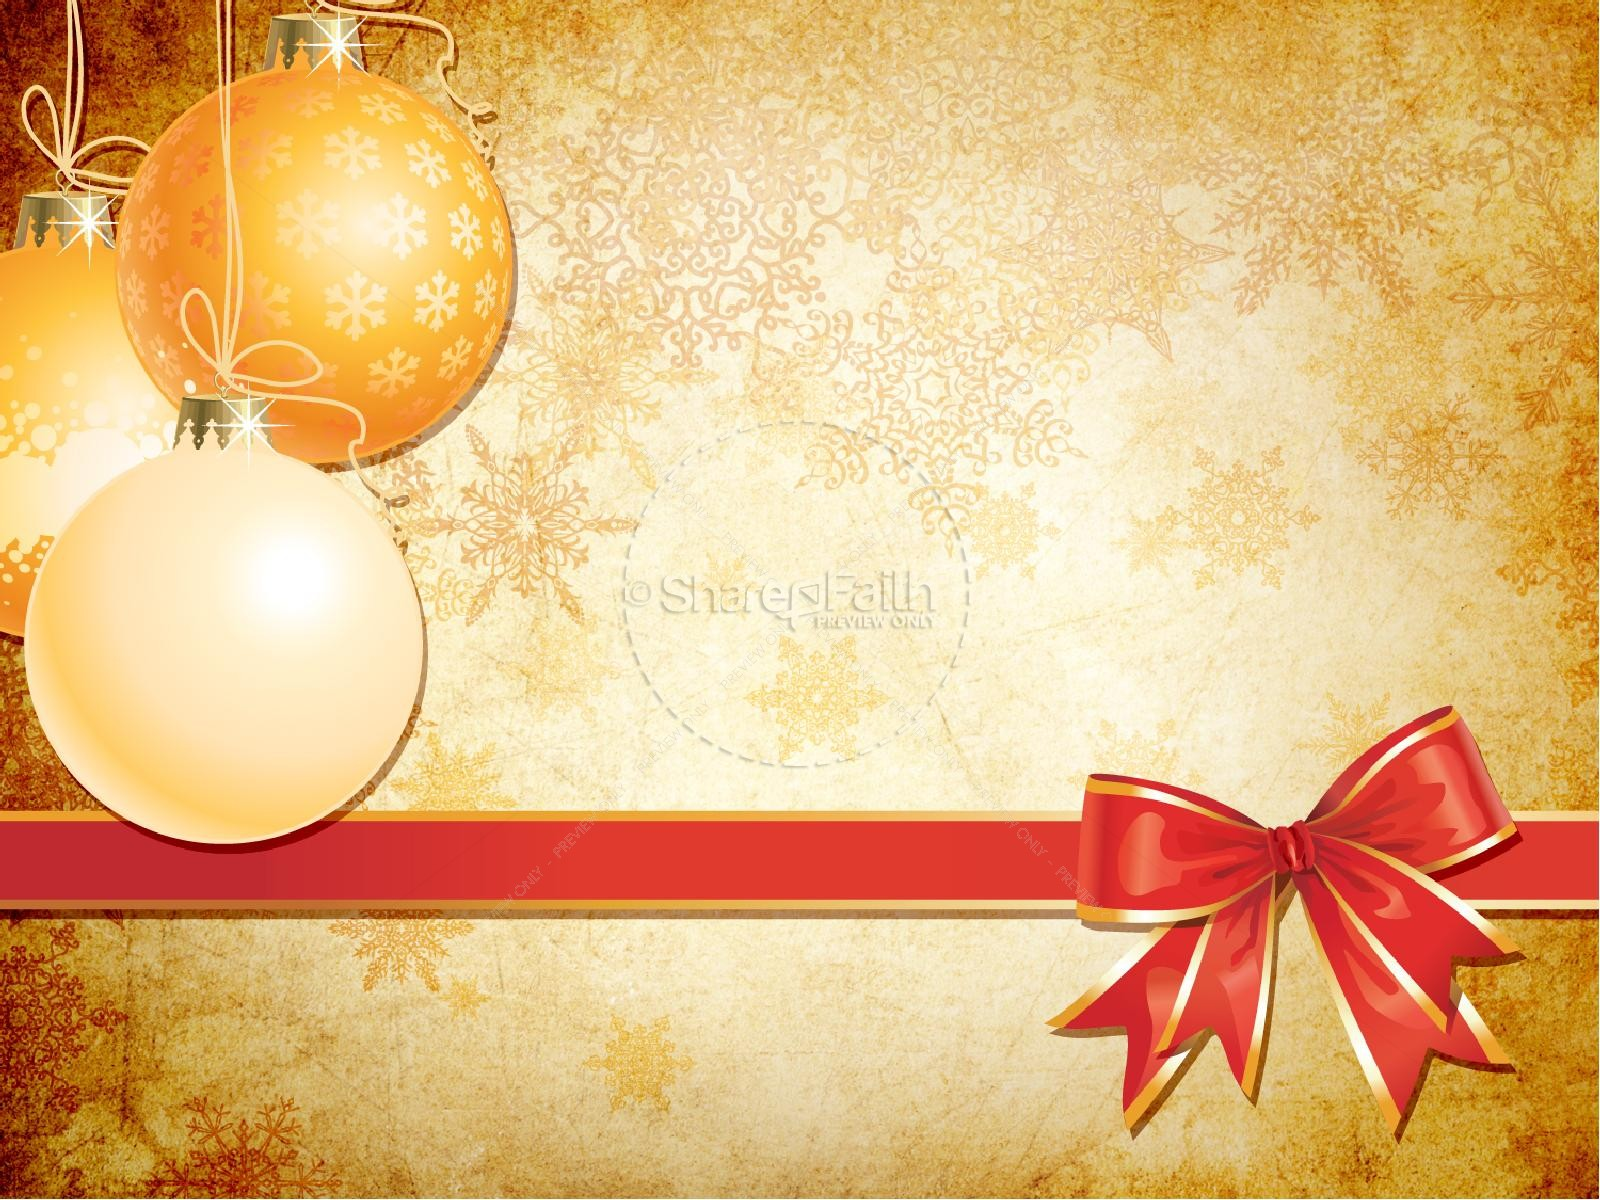 gold christmas decorations powerpoint template - Gold Christmas Decorations